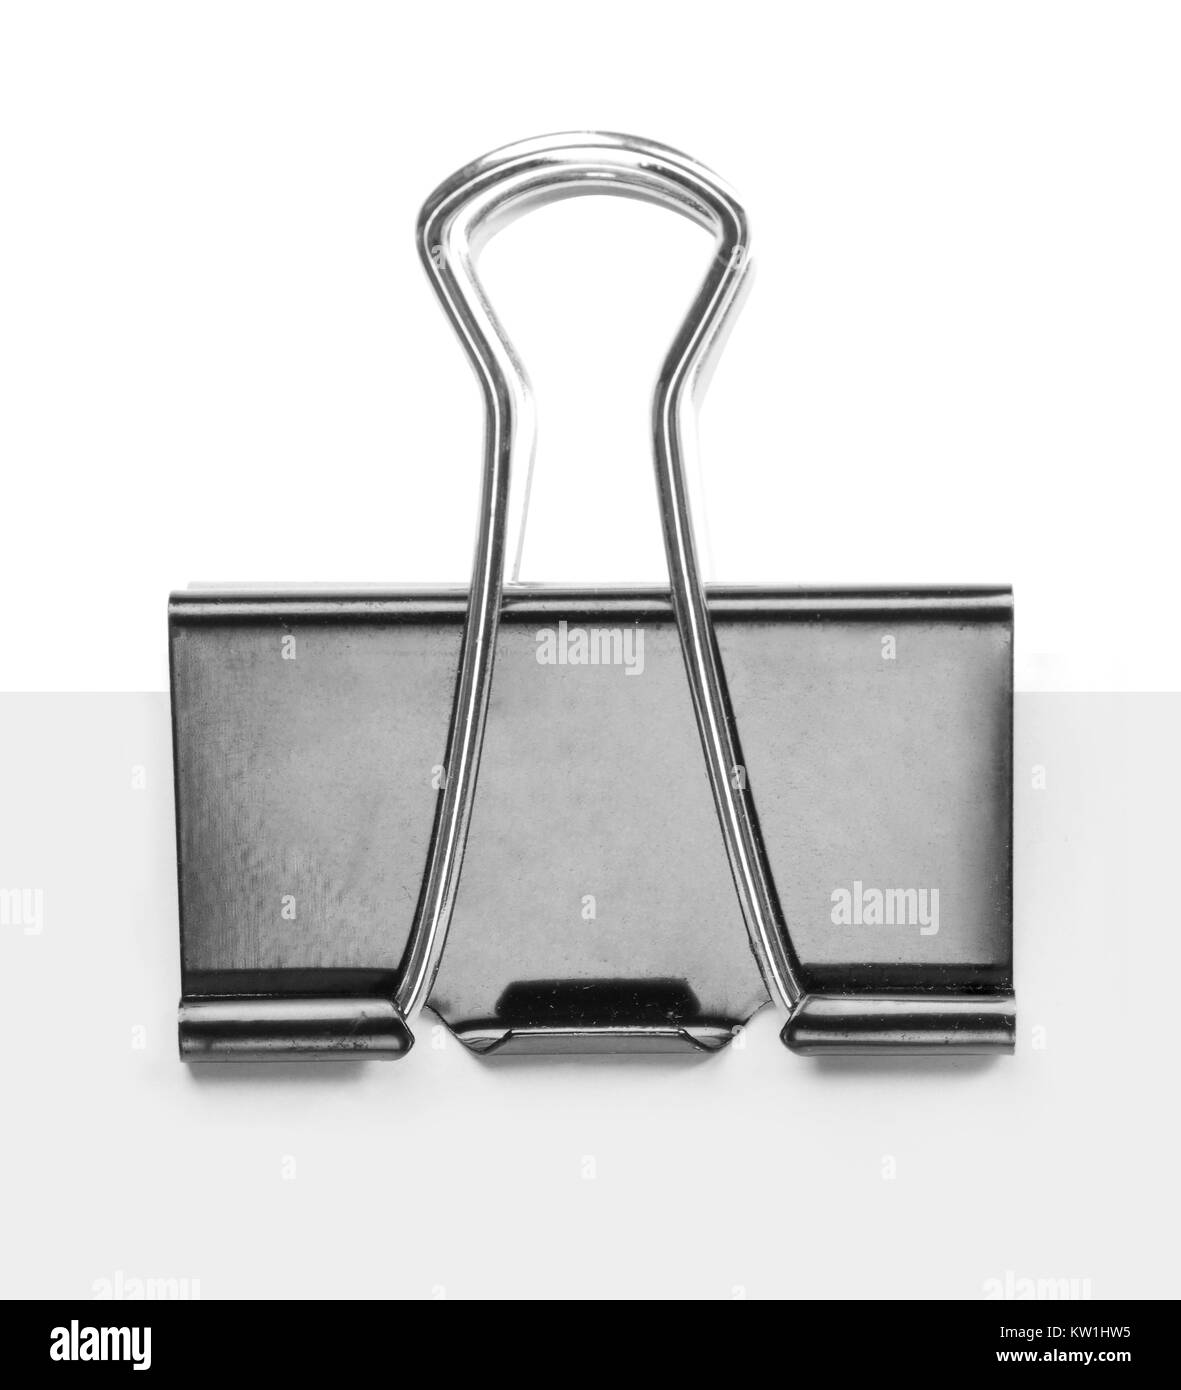 Close up of a binder clip - Stock Image